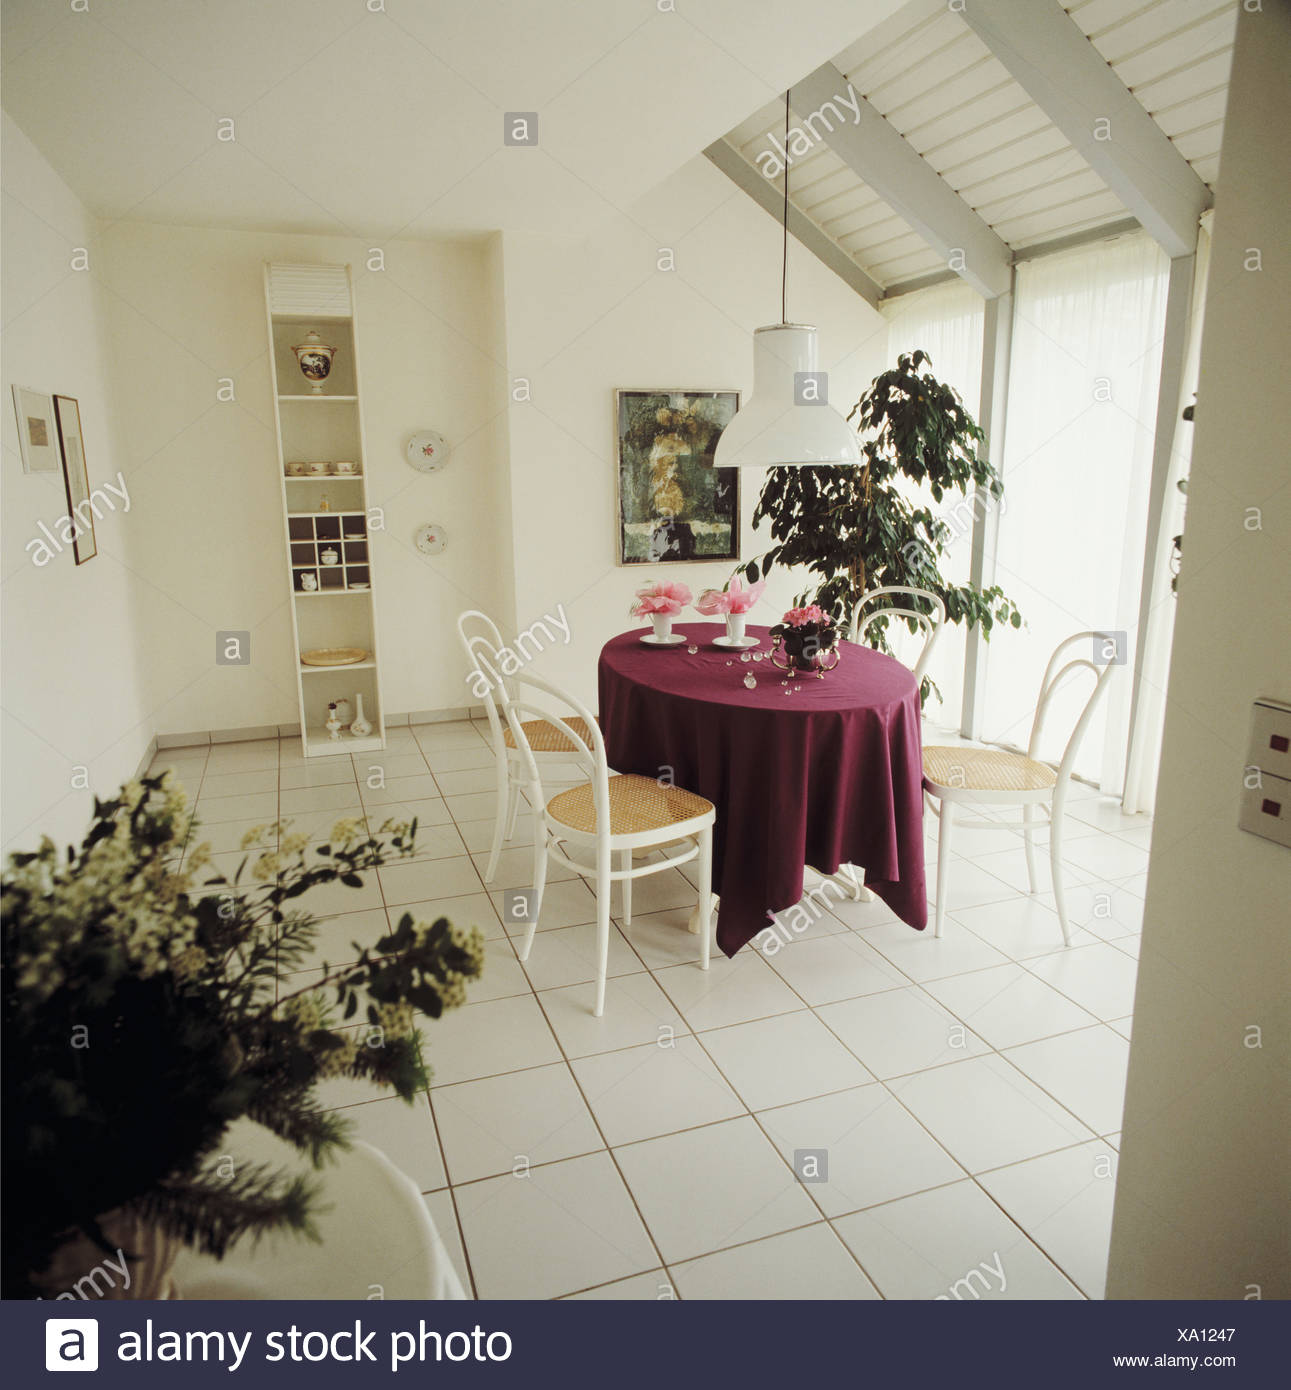 Dark Red Cloth On Oval Table With Bentwood Chairs In White Dining Room With  White Tiled Floor And Green Houseplants